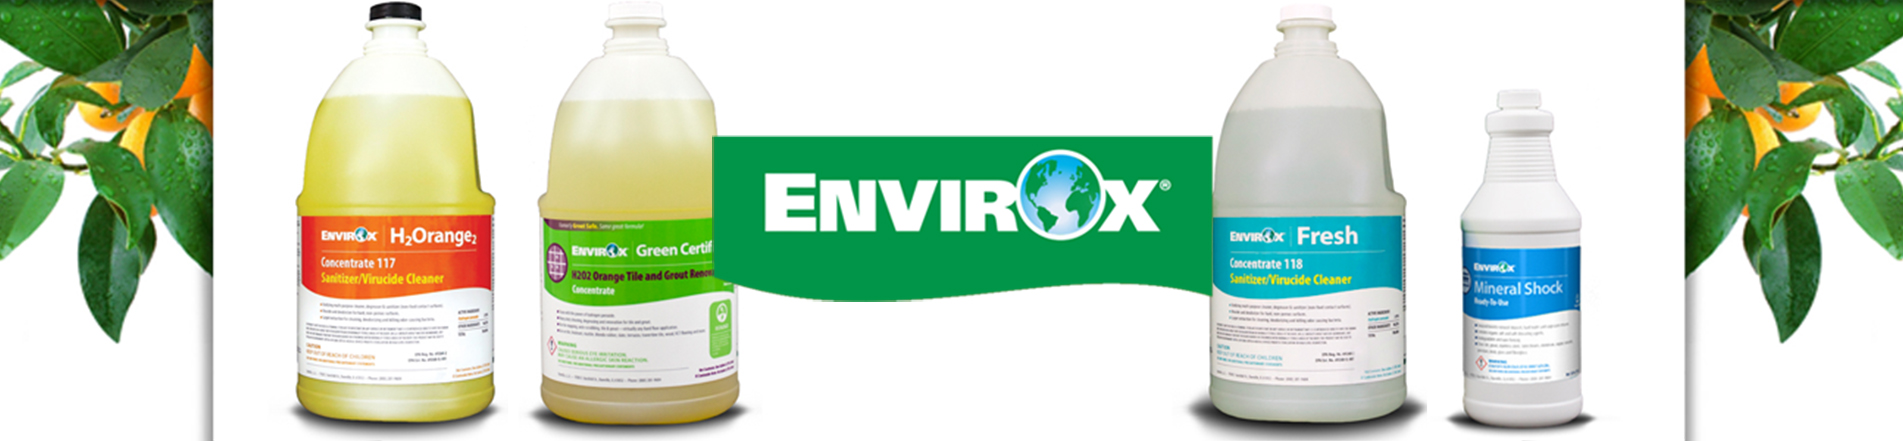 Envirox Cleaning Supplies